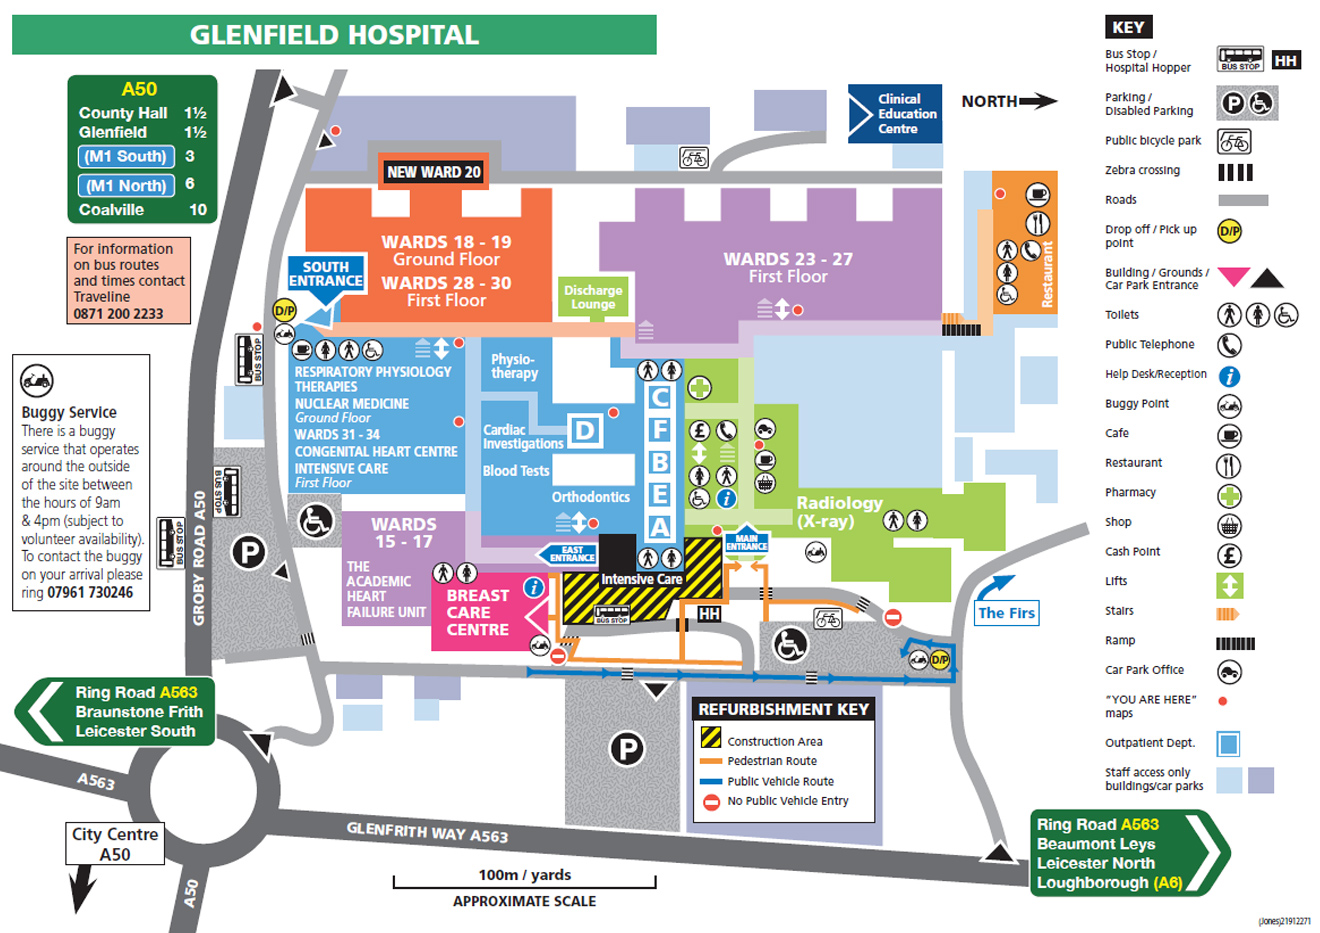 Nottingham City Hospital Map Travelling to the Glenfield Hospital